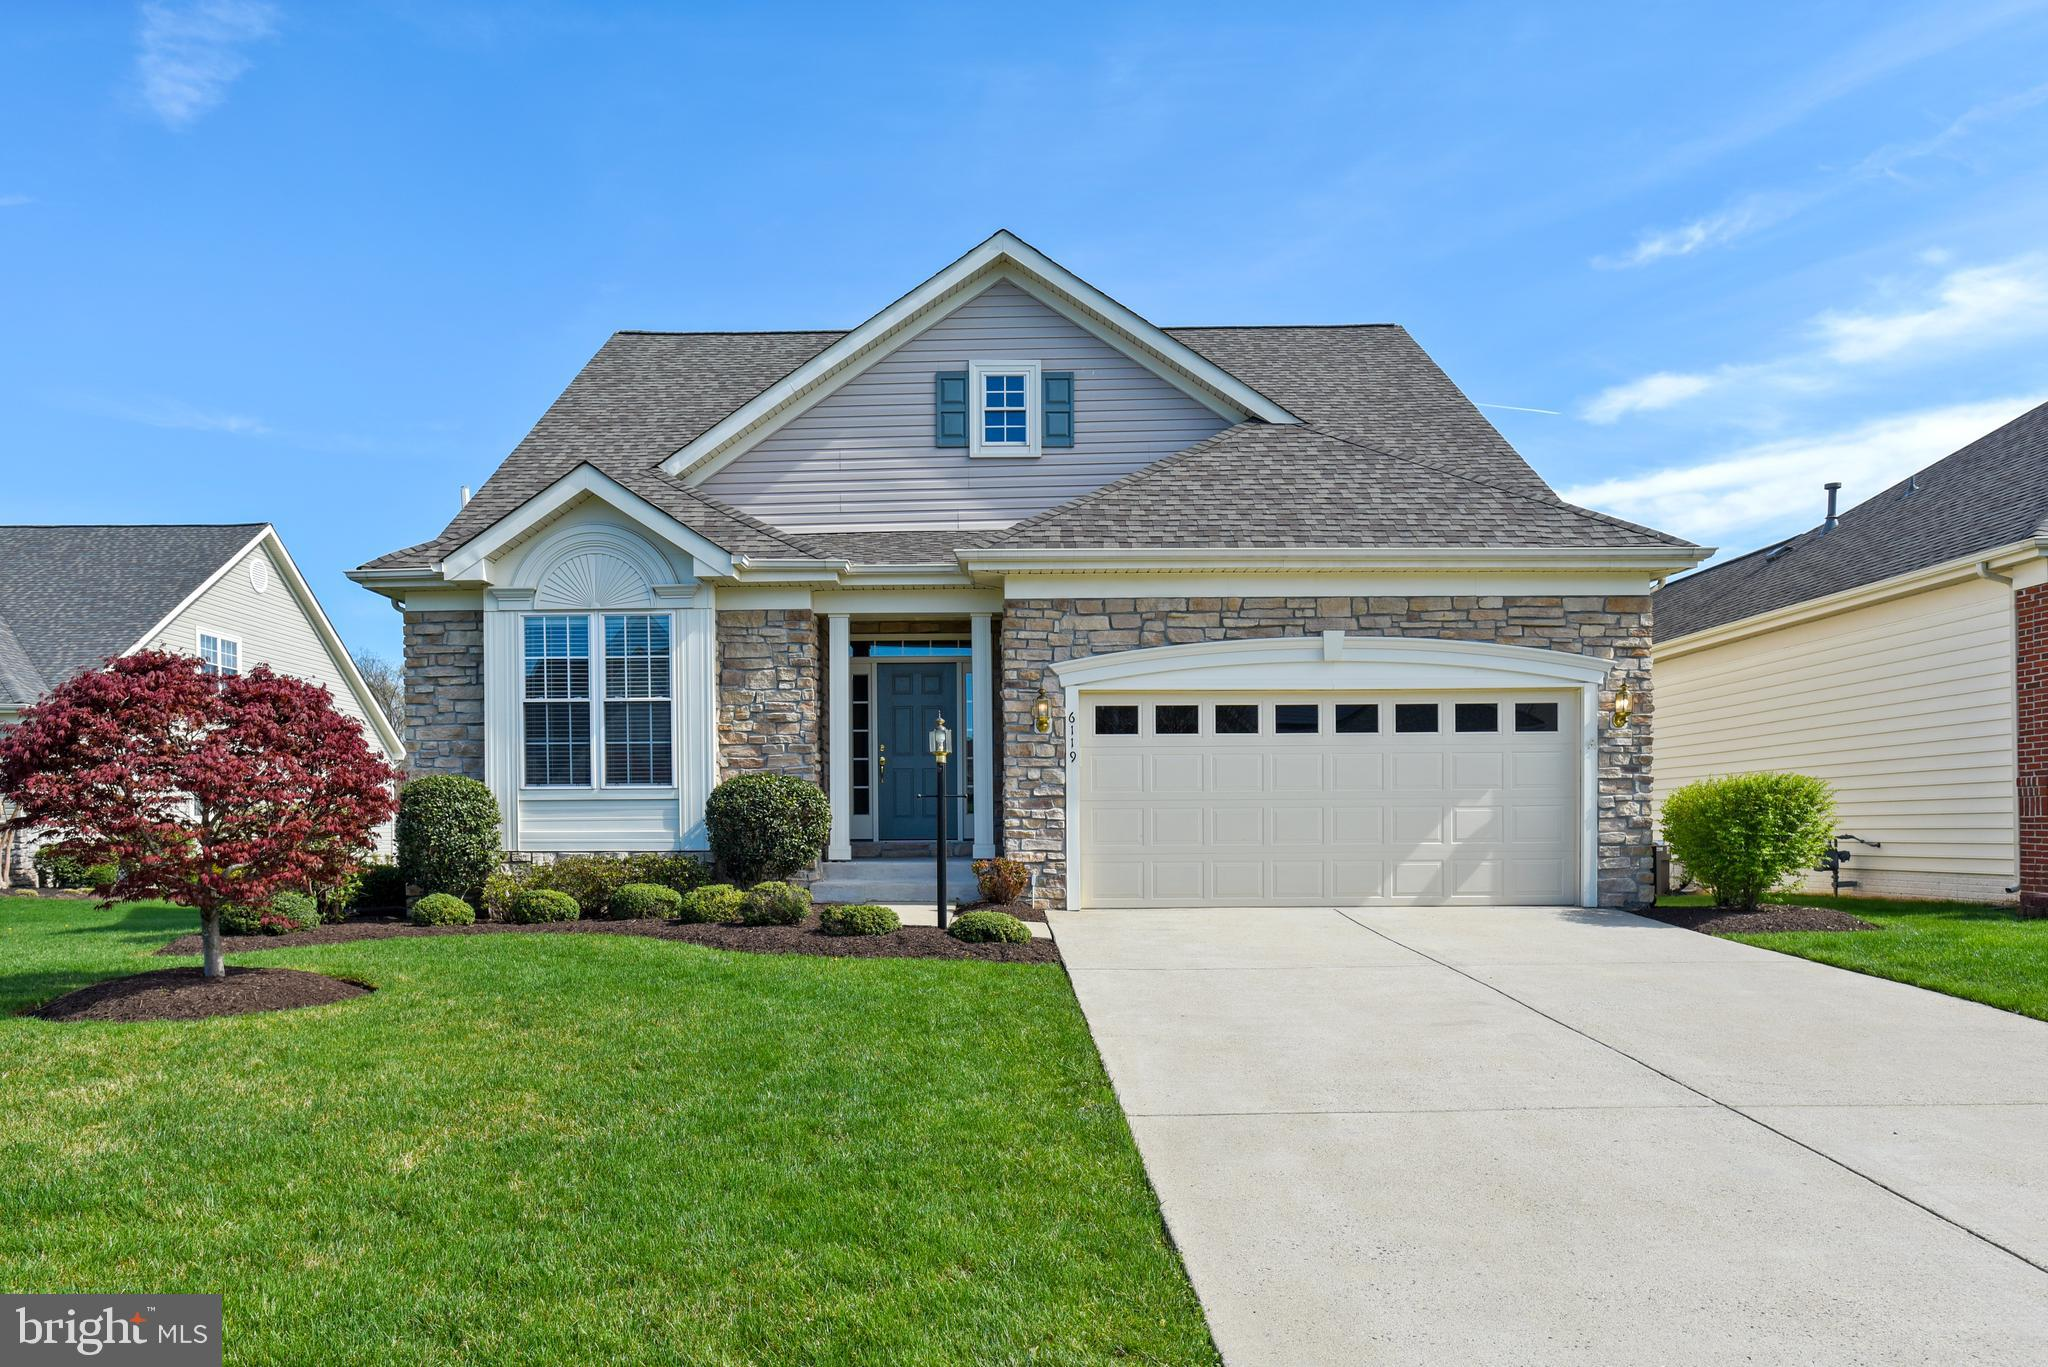 Welcome Home to this gorgeous home with a pond view in the 55 and better community of Heritage Hunt!